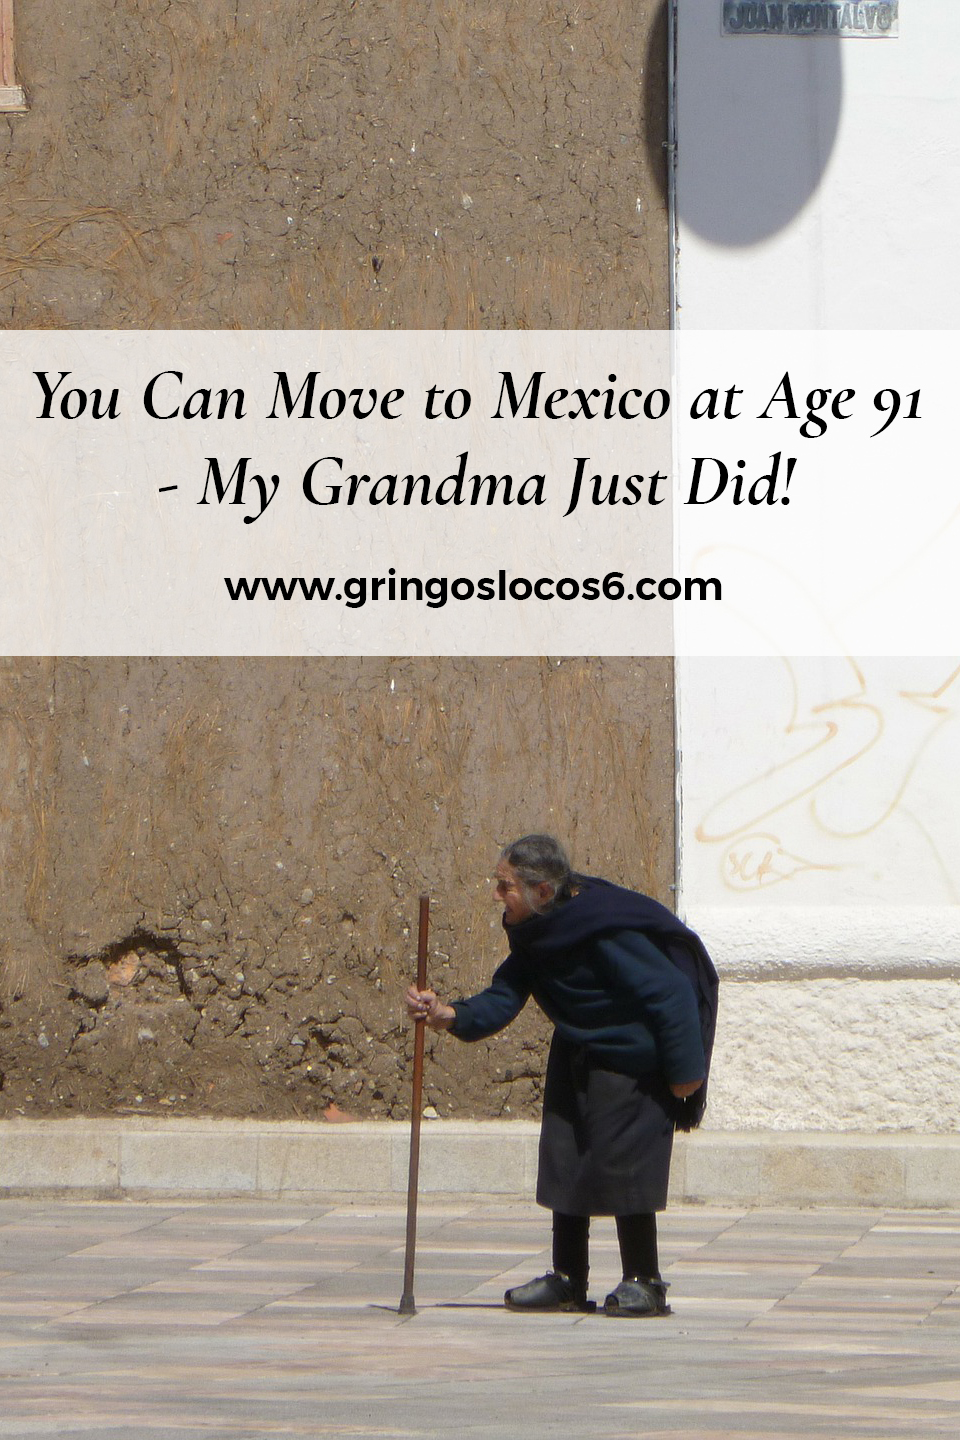 My grandmother is ninety plus. Seldom do you hear about great-great-grandmas in their nineties, that move to Mexico. It does happen. Here's our story.